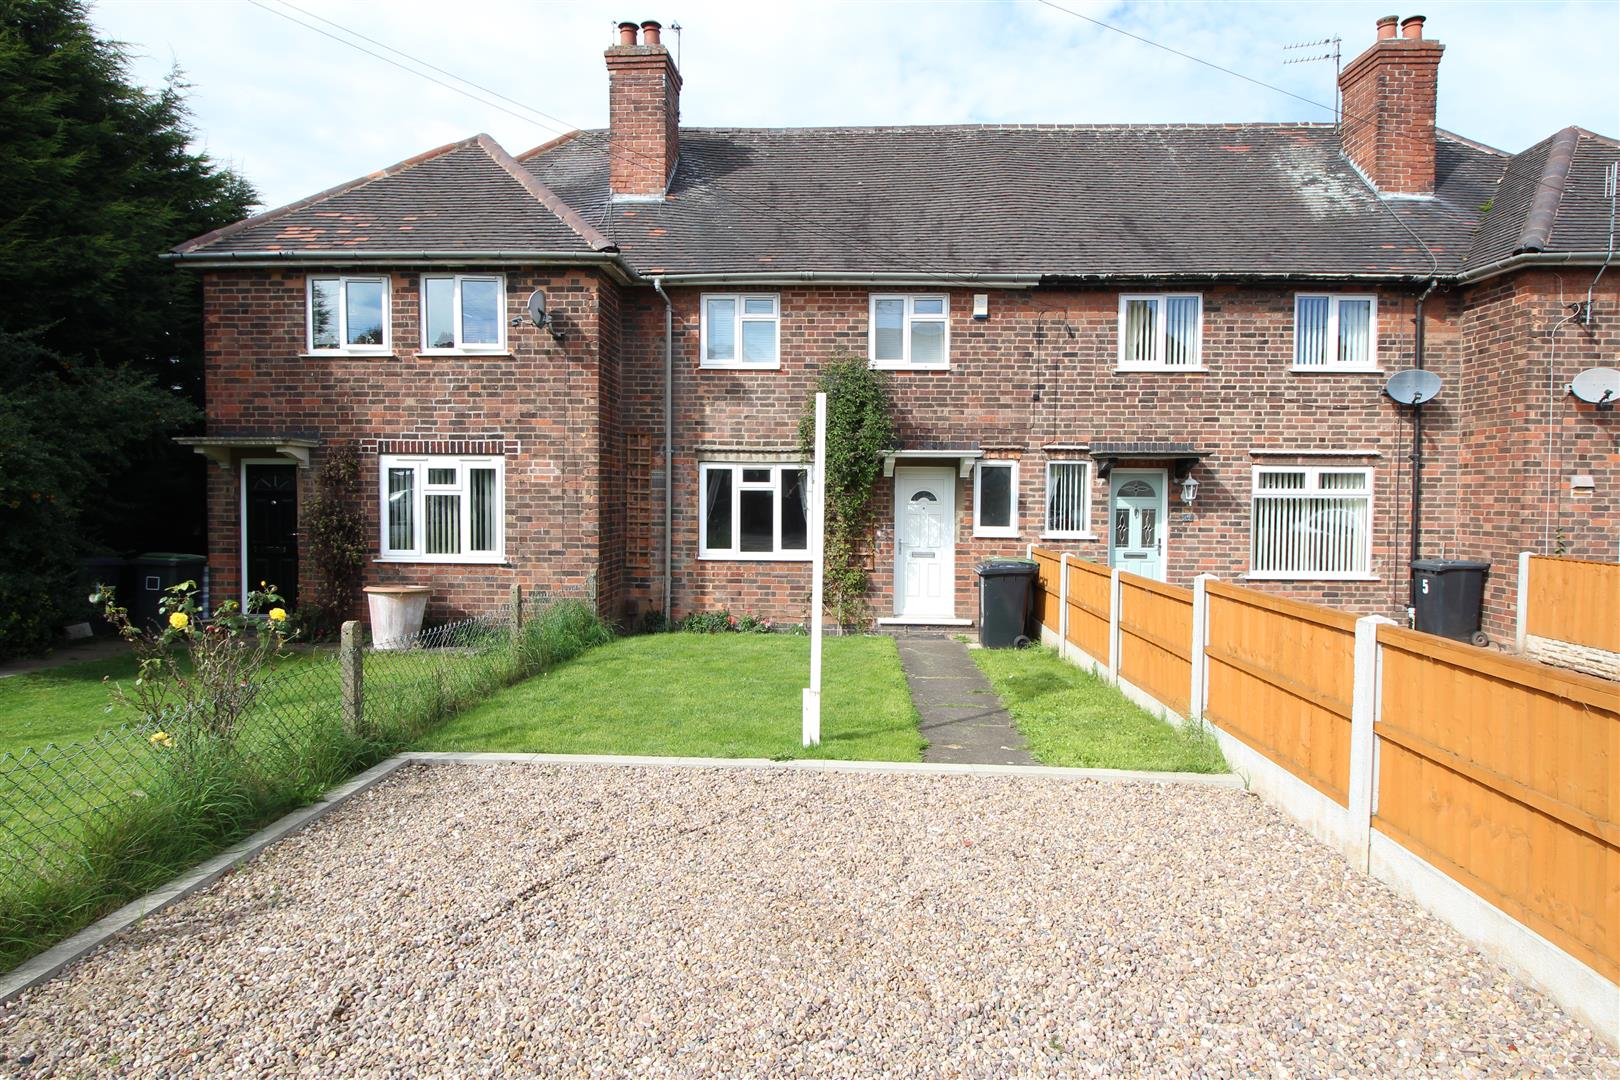 2 Bedrooms Terraced House for sale in Cliff Hill Avenue, Stapleford